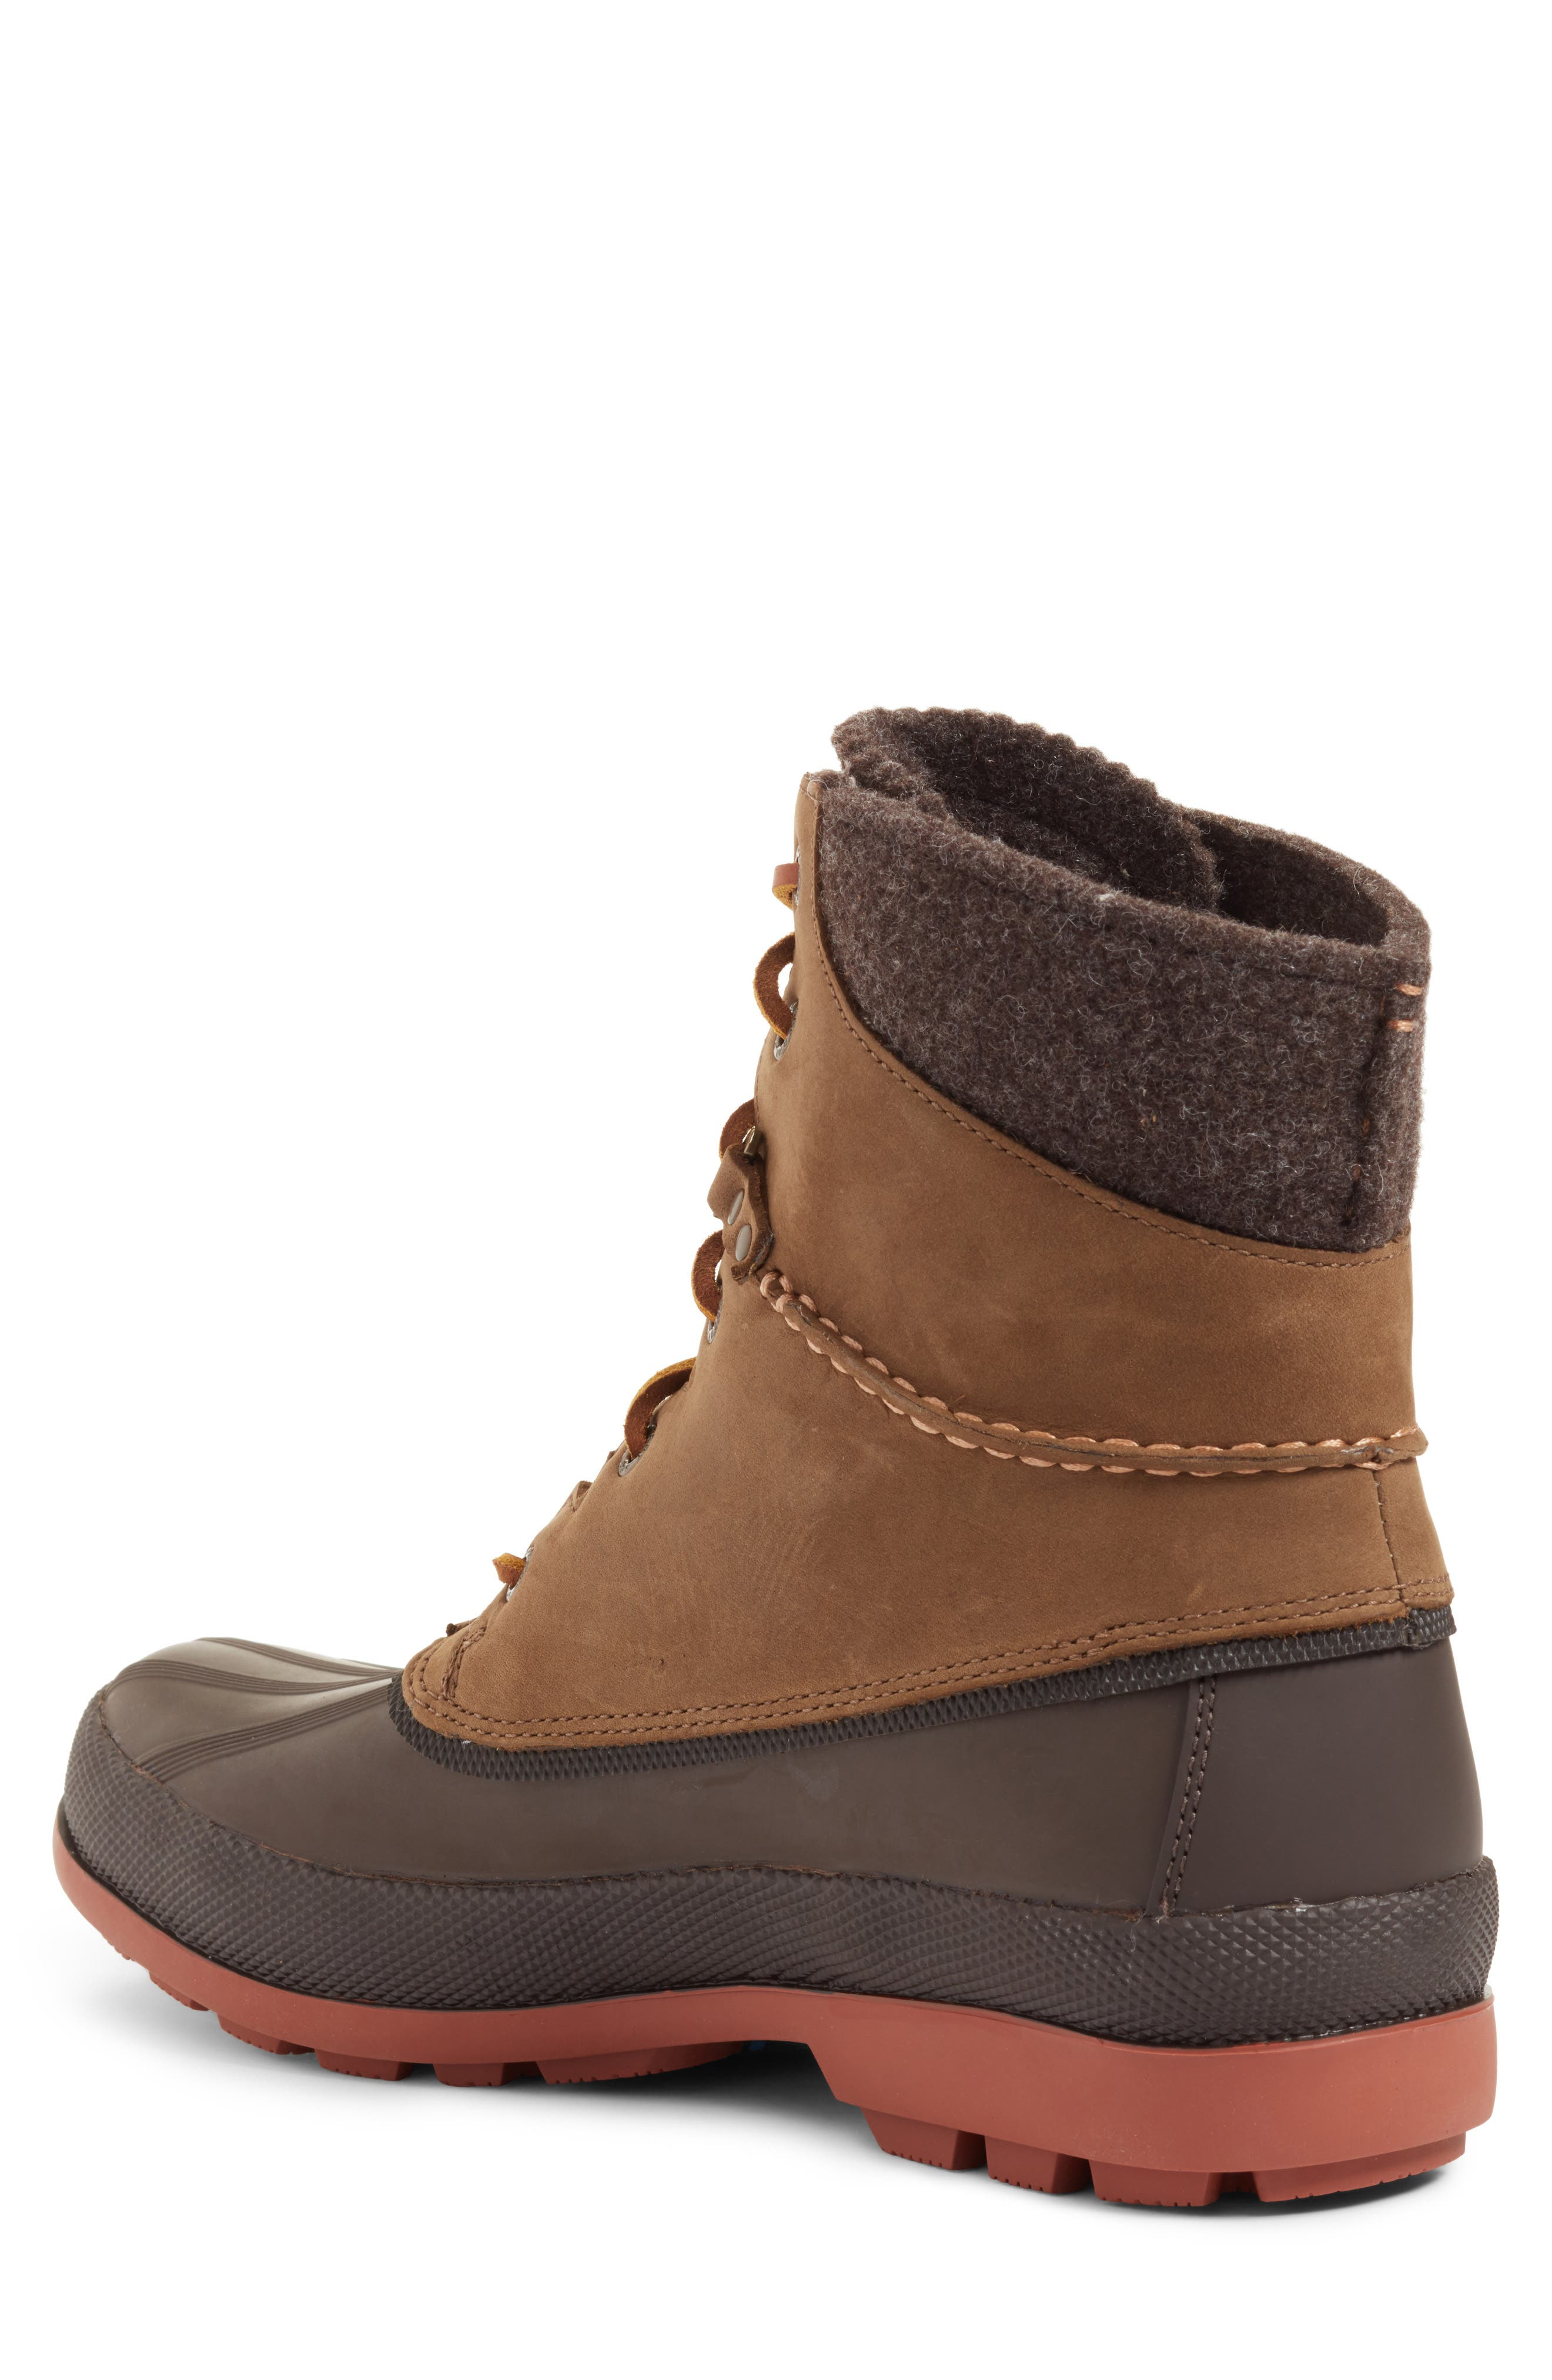 Cold Bay Duck Boot,                             Alternate thumbnail 2, color,                             201